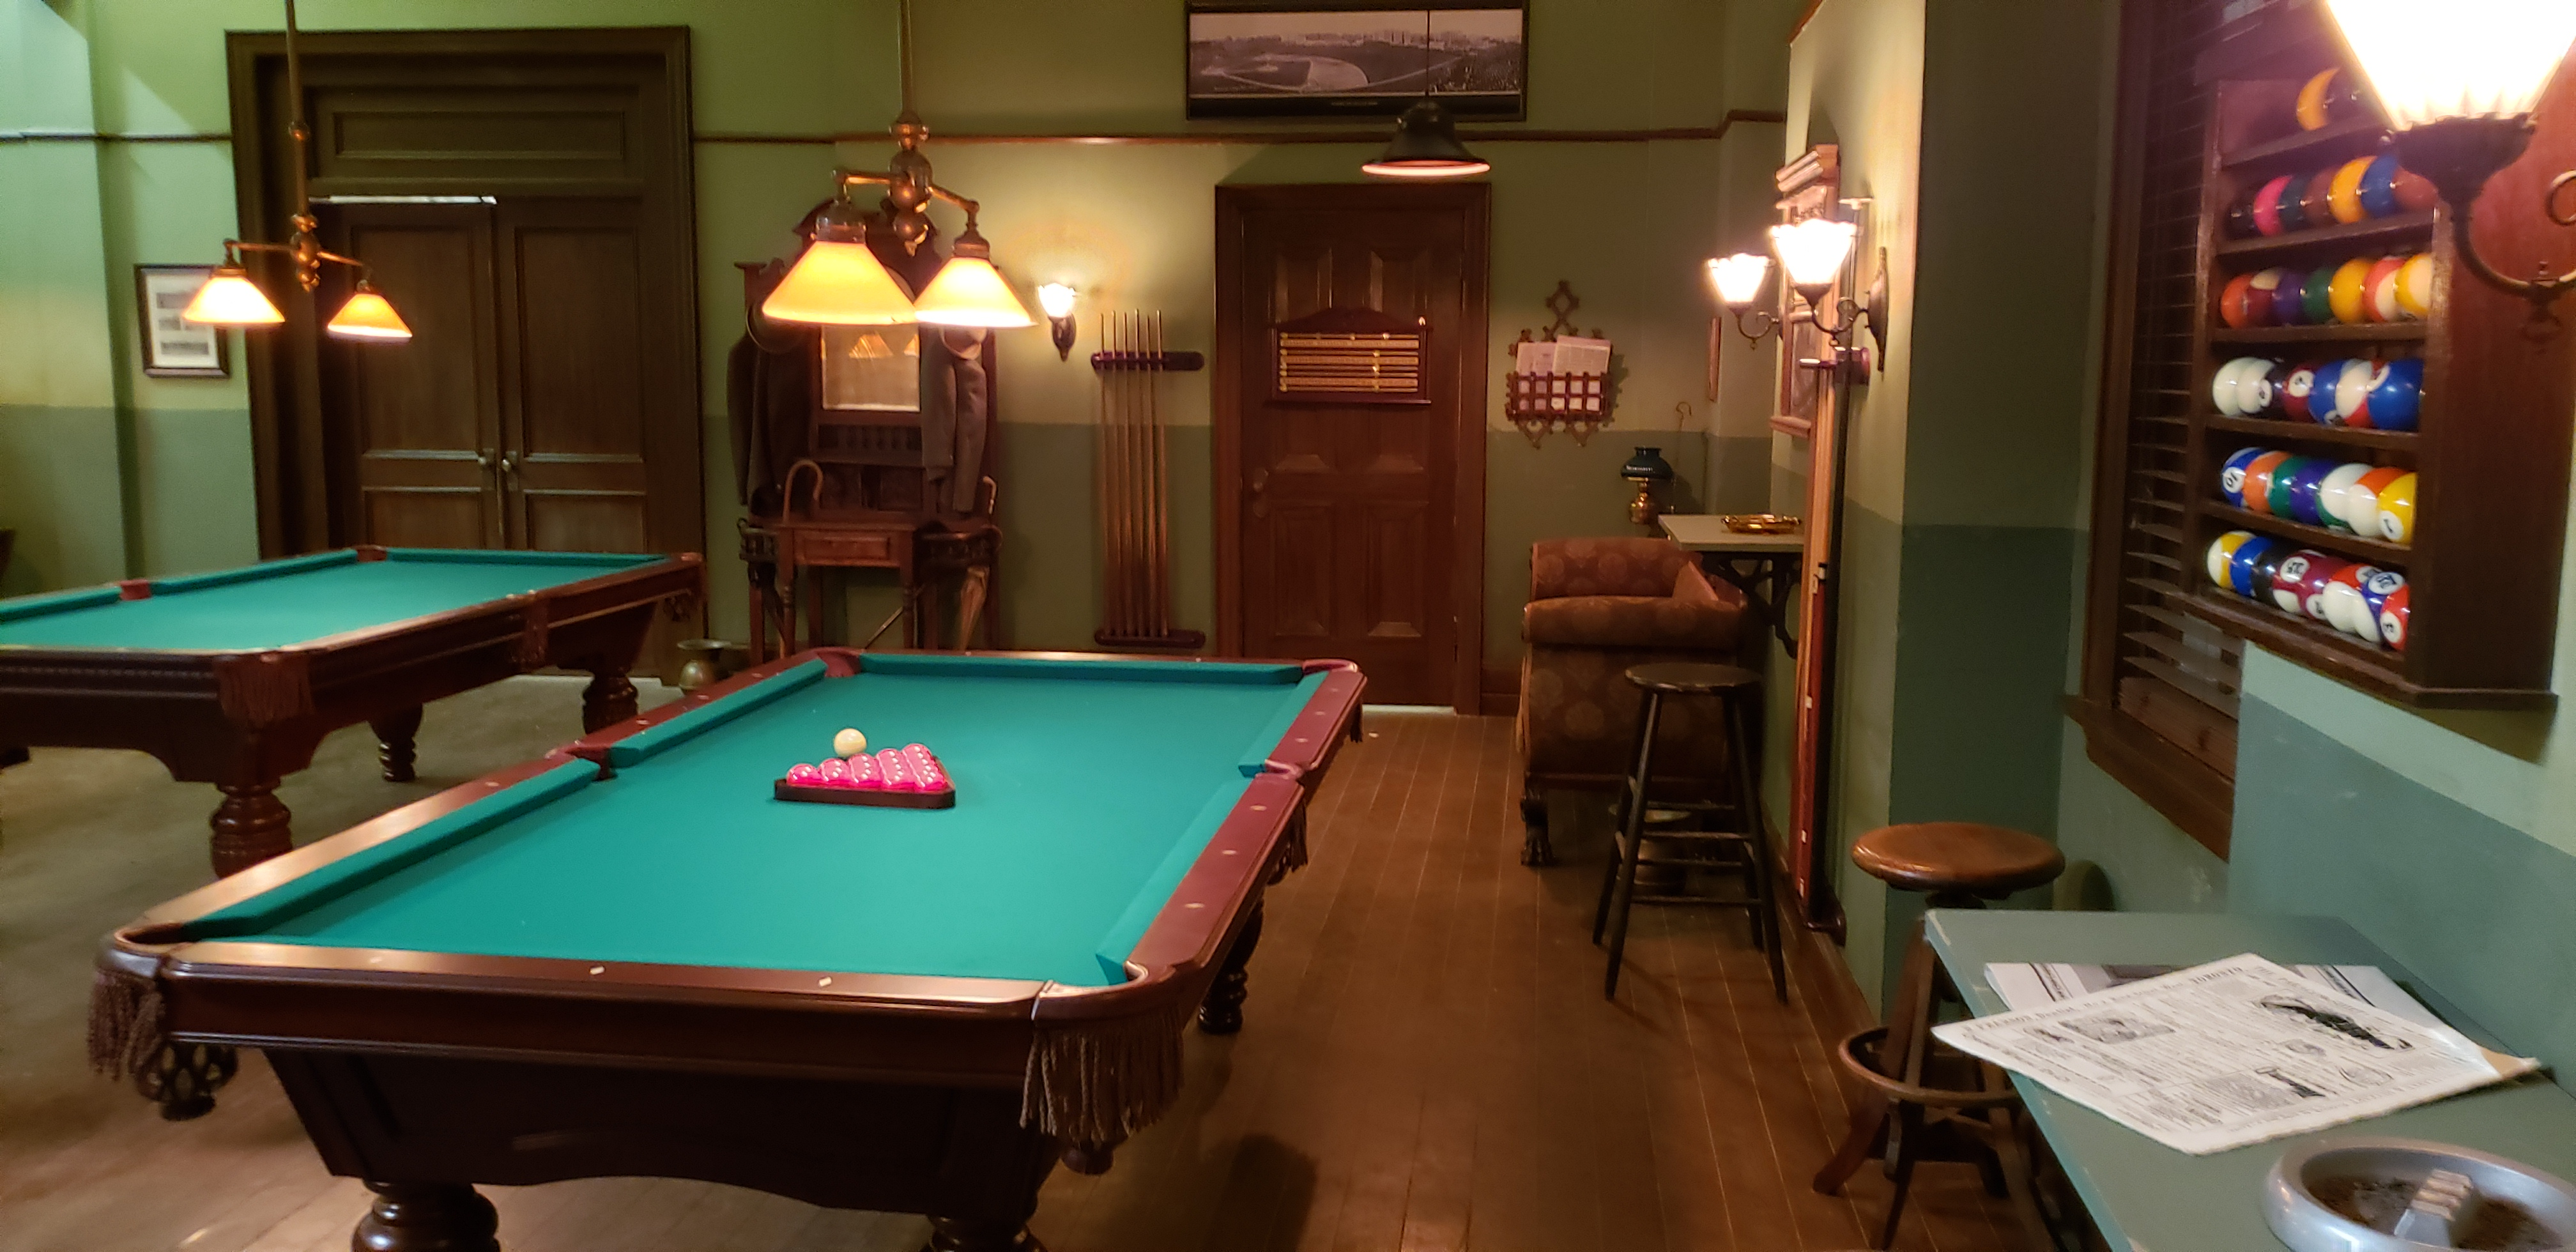 Mr. Billiard in cooperation with Beringer was pleased to supplier to the Set Of Murdoc Mysteries. Watch this season and get a glimpse of the fabulous Lemire Billiard Table.